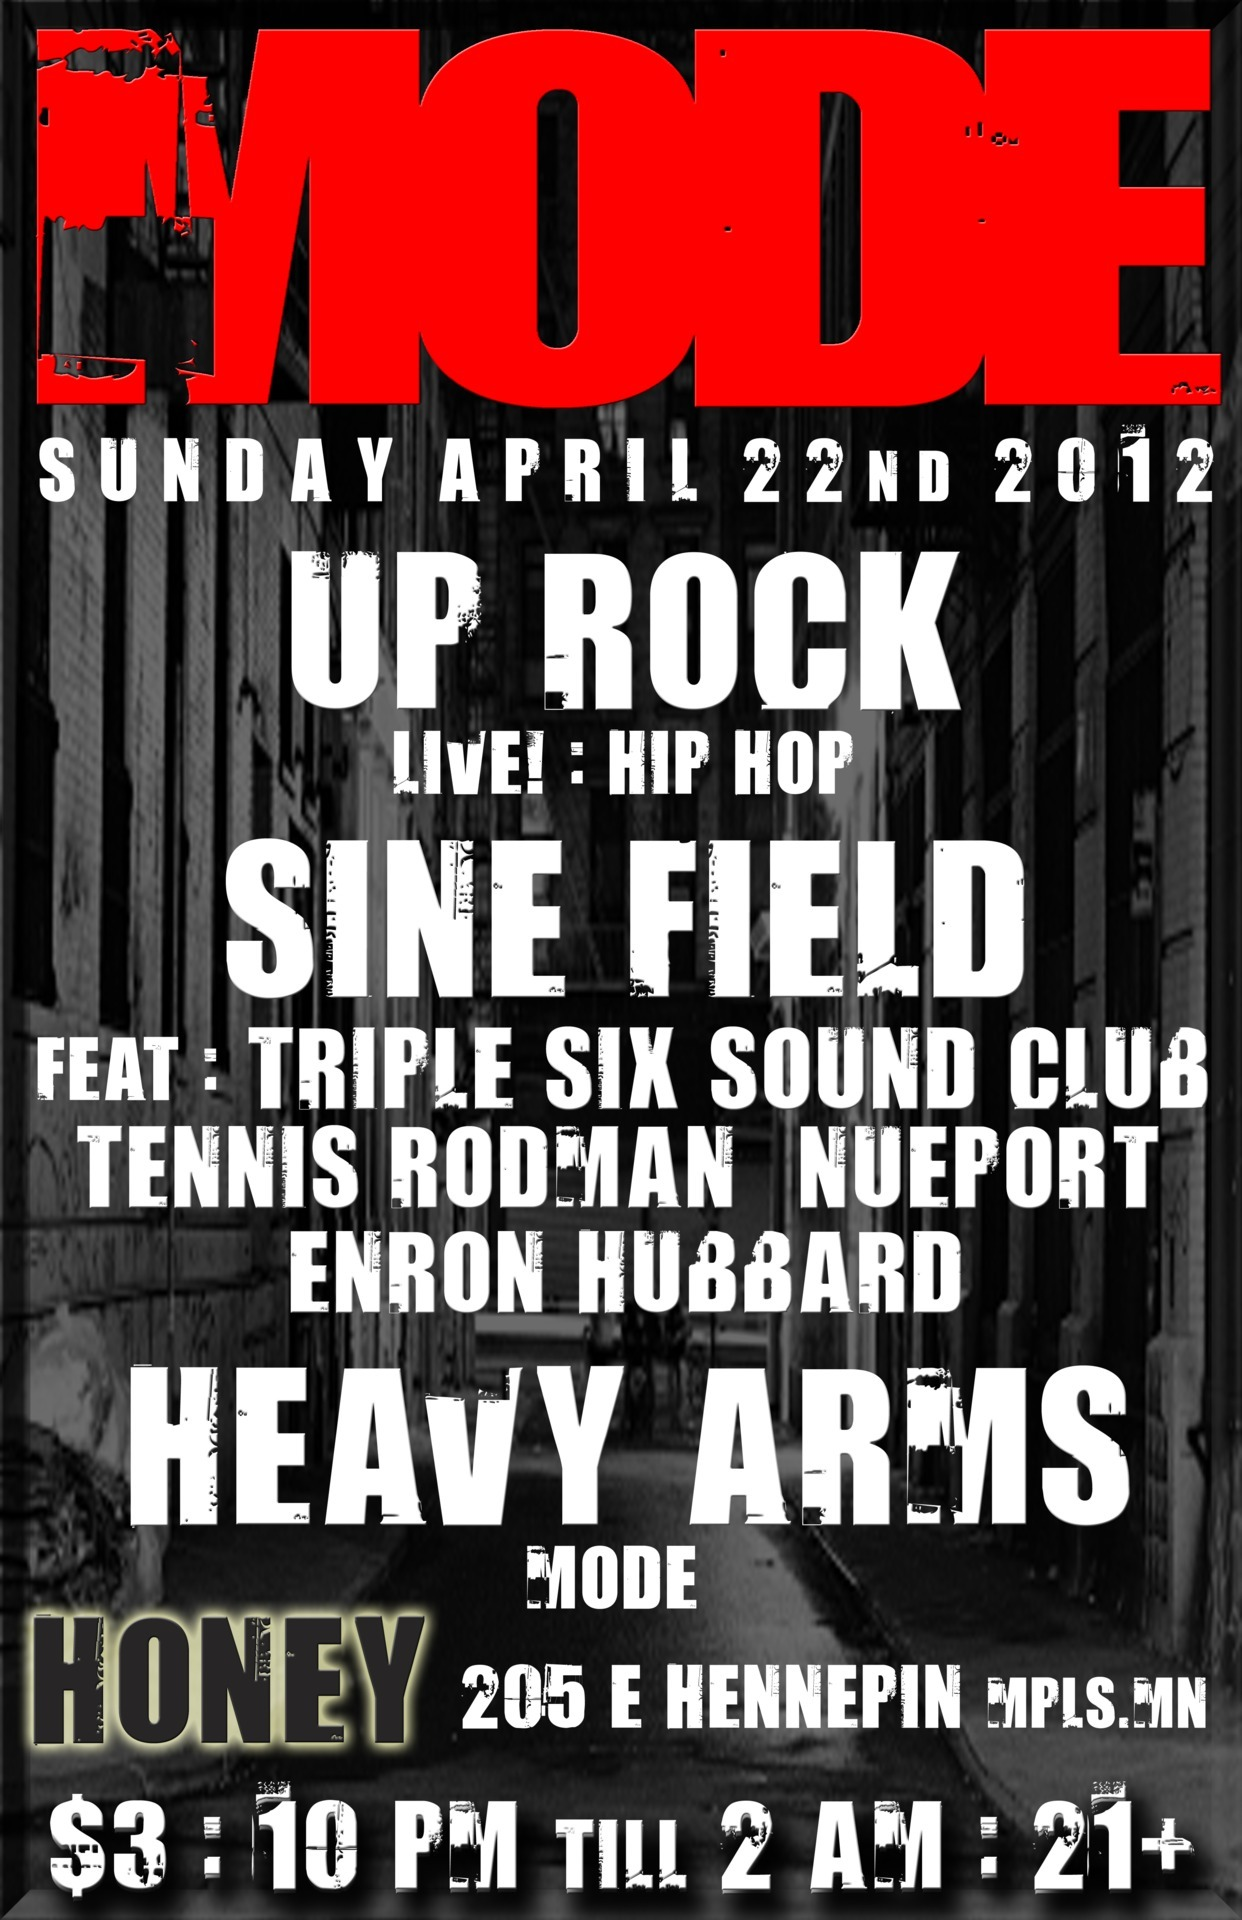 modempls:  MODE : April 2012 Edition FT: #UPROCK + @TheSineField aka @TennisHoodman @MIKEYdLANE @666SOUNDCLUB @NRONHUBBRD @honeympls